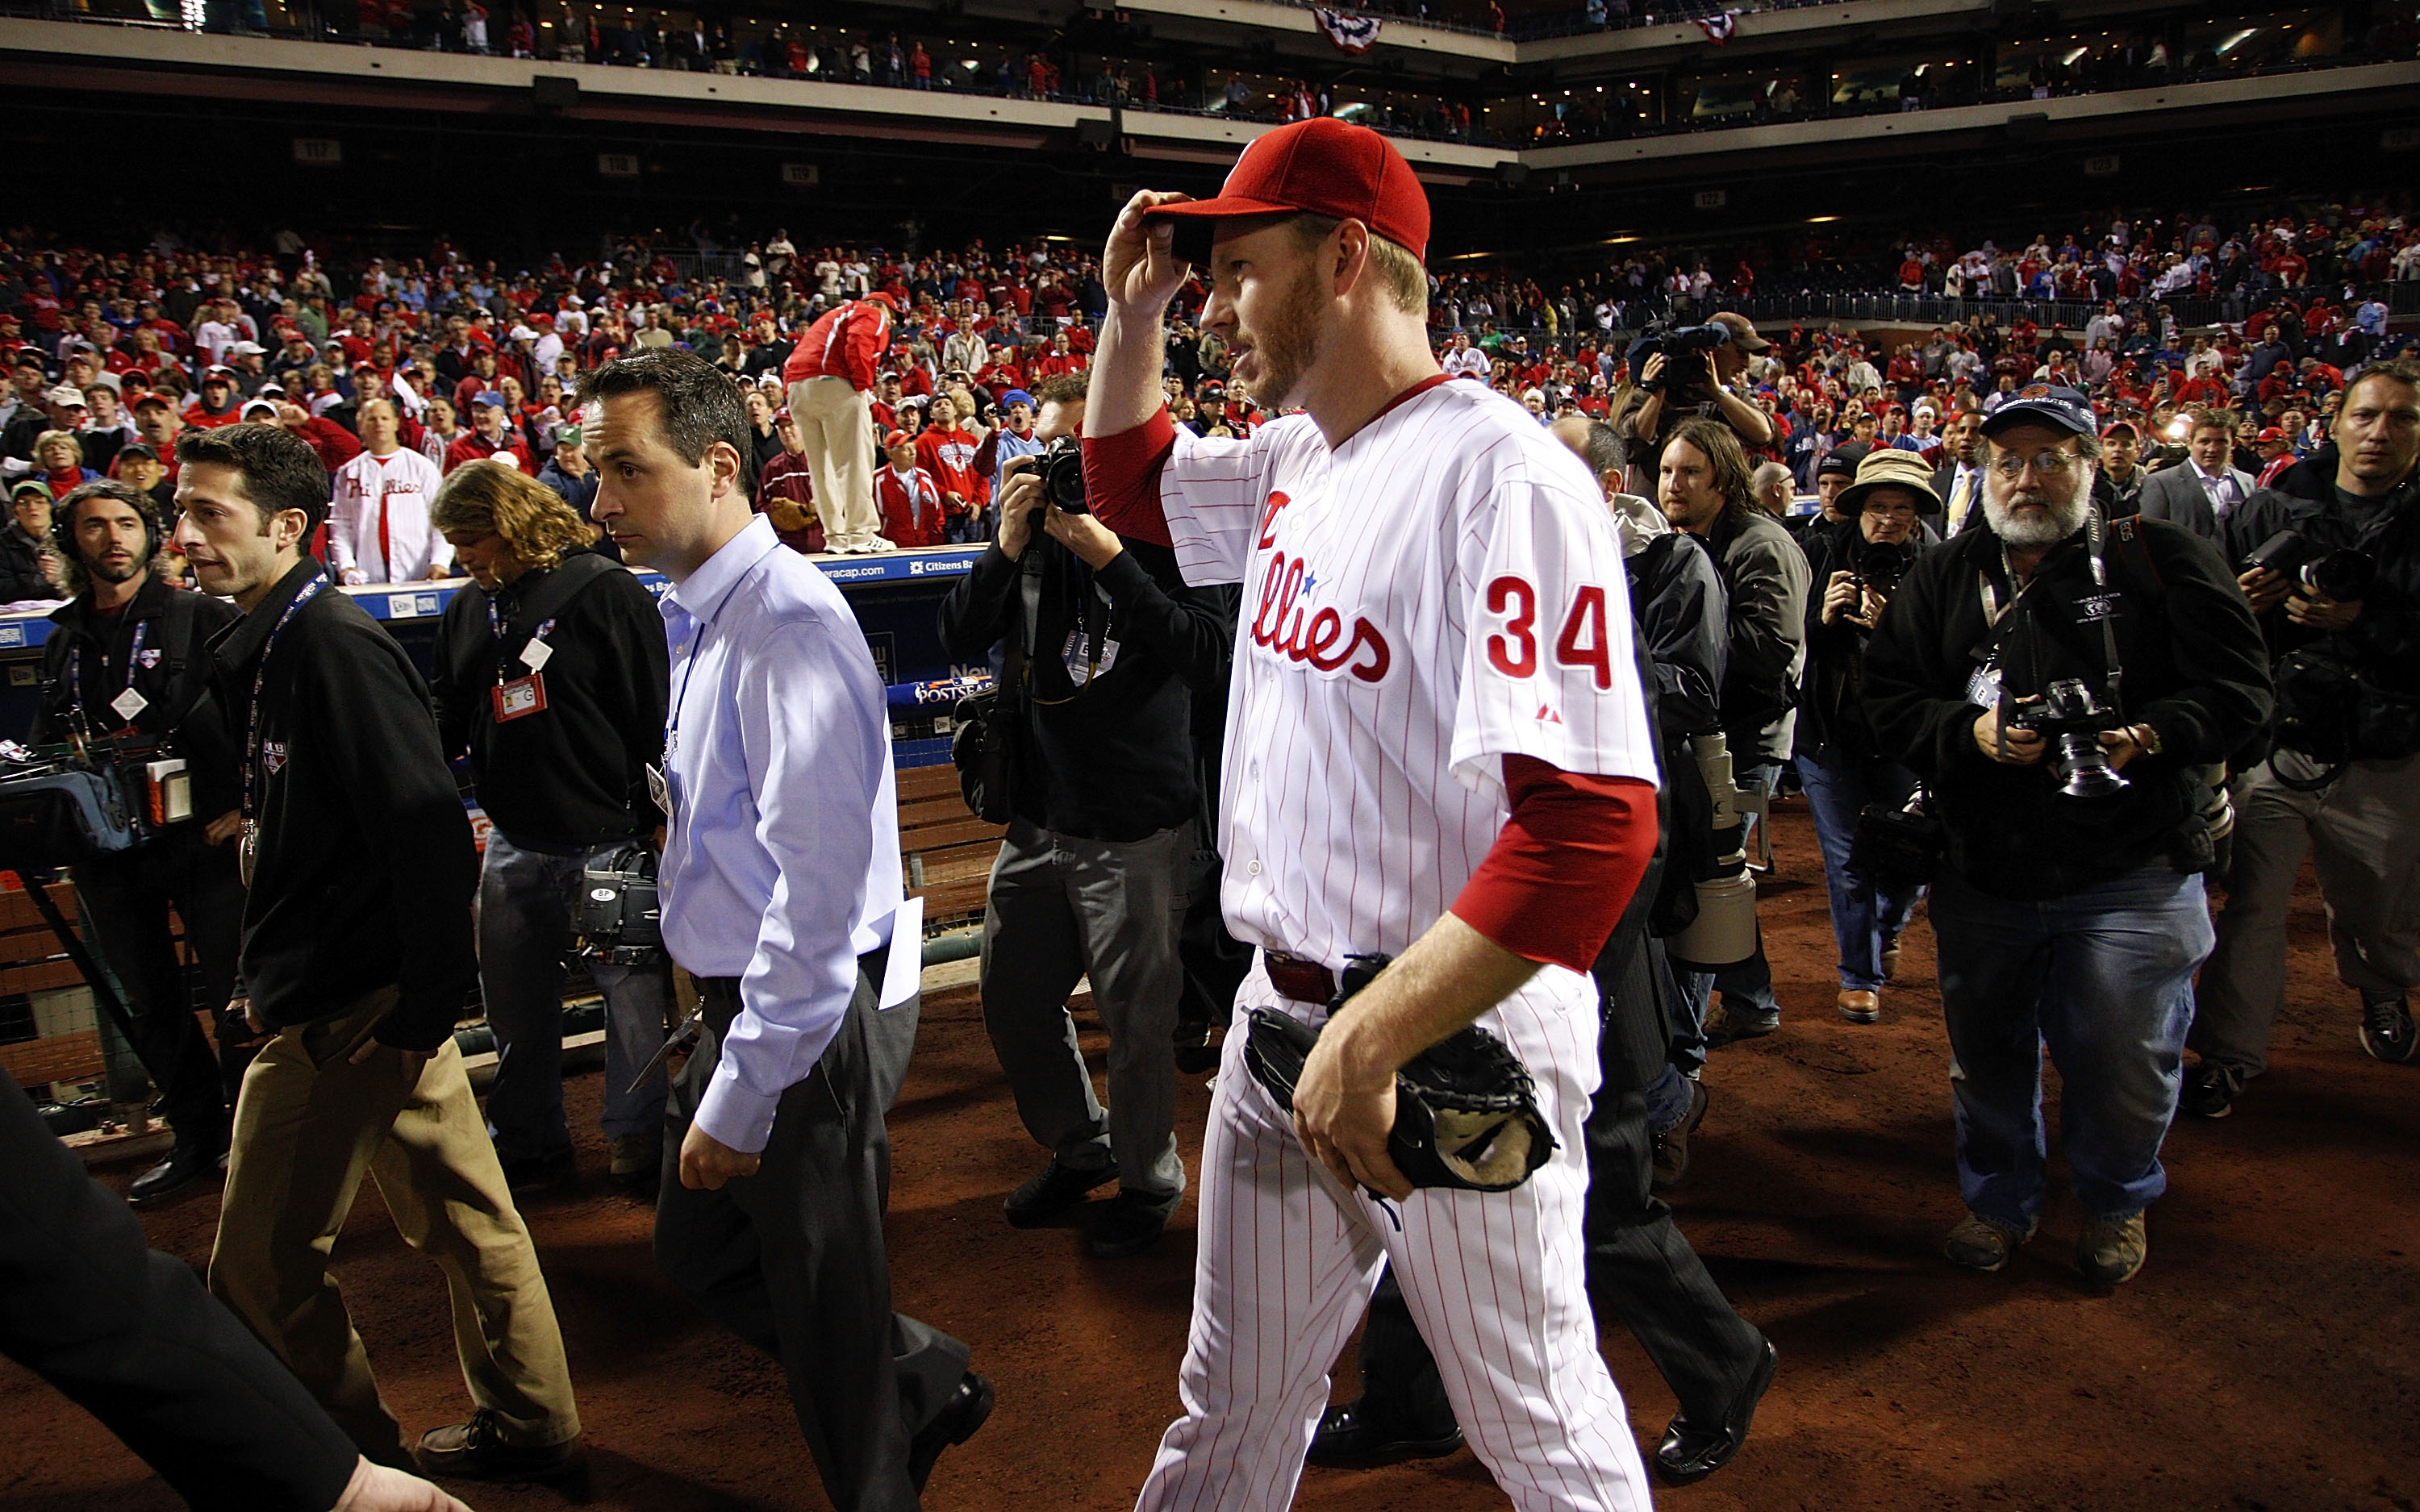 PHILADELPHIA - OCTOBER 06:  Roy Halladay #34 of the Philadelphia Phillies walks to the dugout after pitching a no-hitter in Game 1 of the NLDS against the Cincinnati Reds at Citizens Bank Park on October 6, 2010 in Philadelphia, Pennsylvania.  (Photo by J